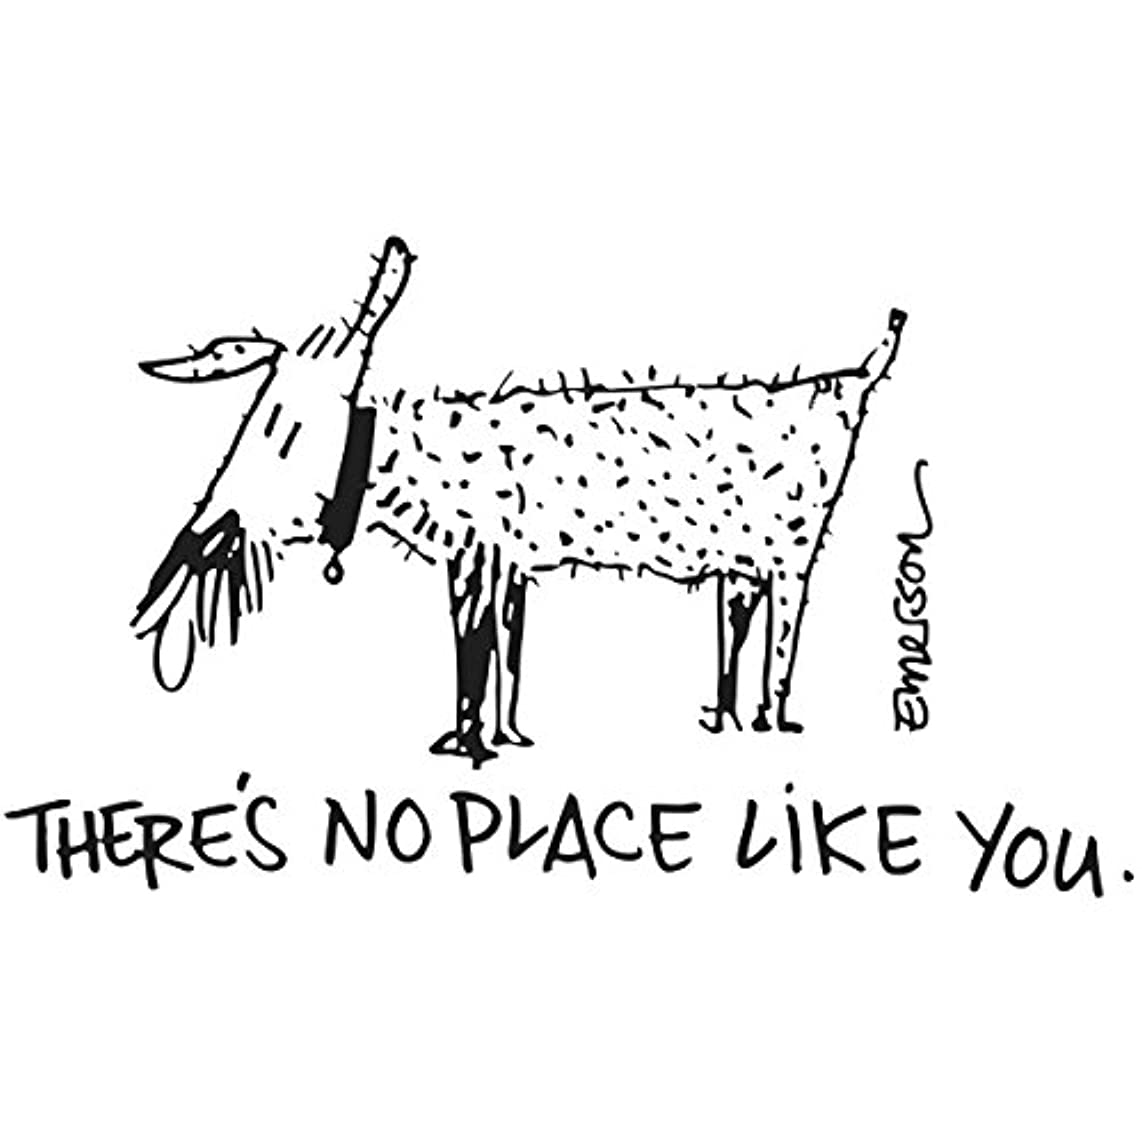 Gourmet Rubber Stamps Cling Stamps 2.75x4.75-There'S No Place Like You